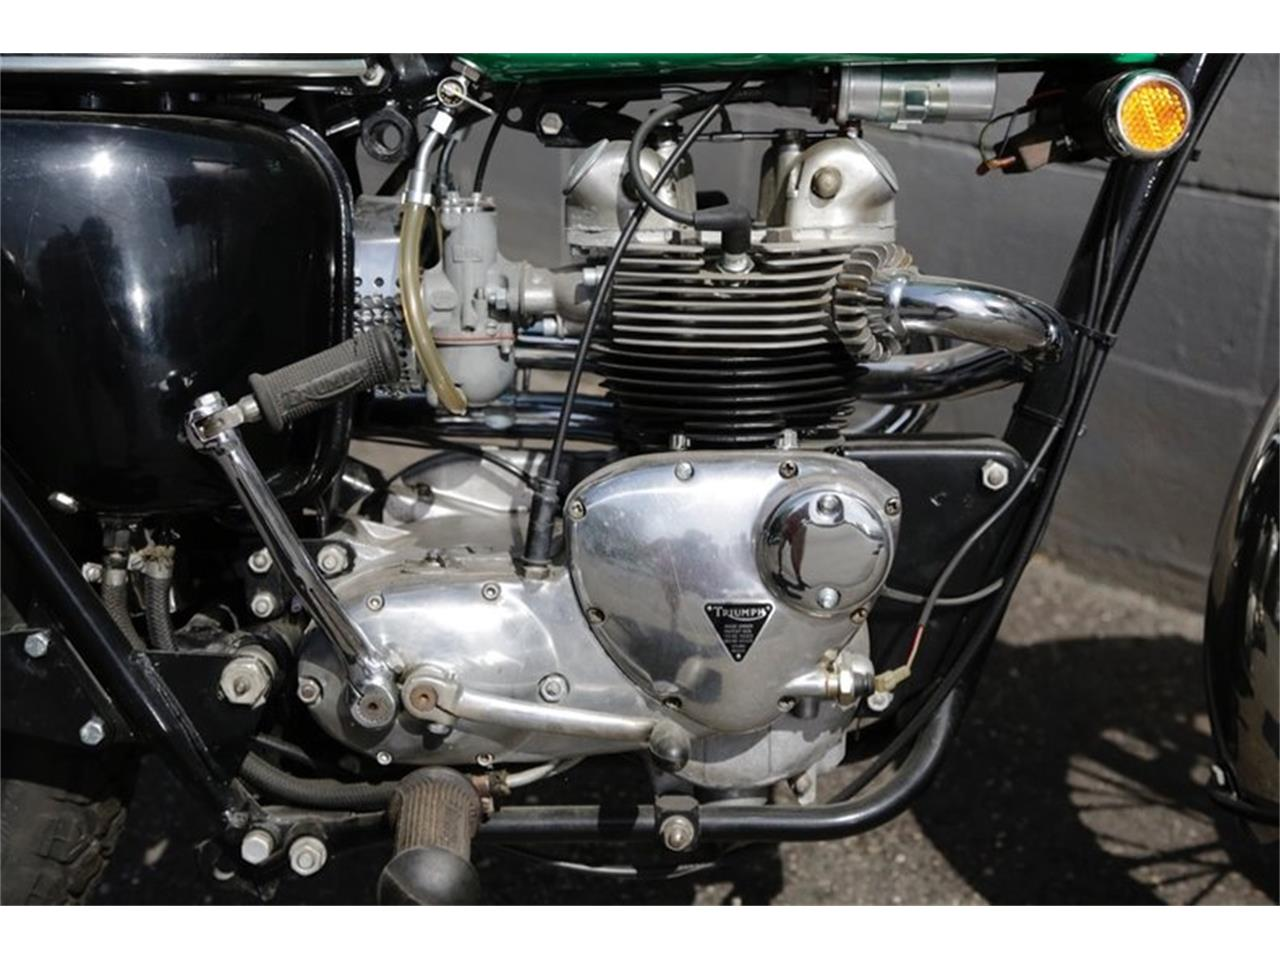 Large Picture of 1969 Triumph Motorcycle located in Seattle Washington - $15,000.00 Offered by Drager's Classics - NPR4